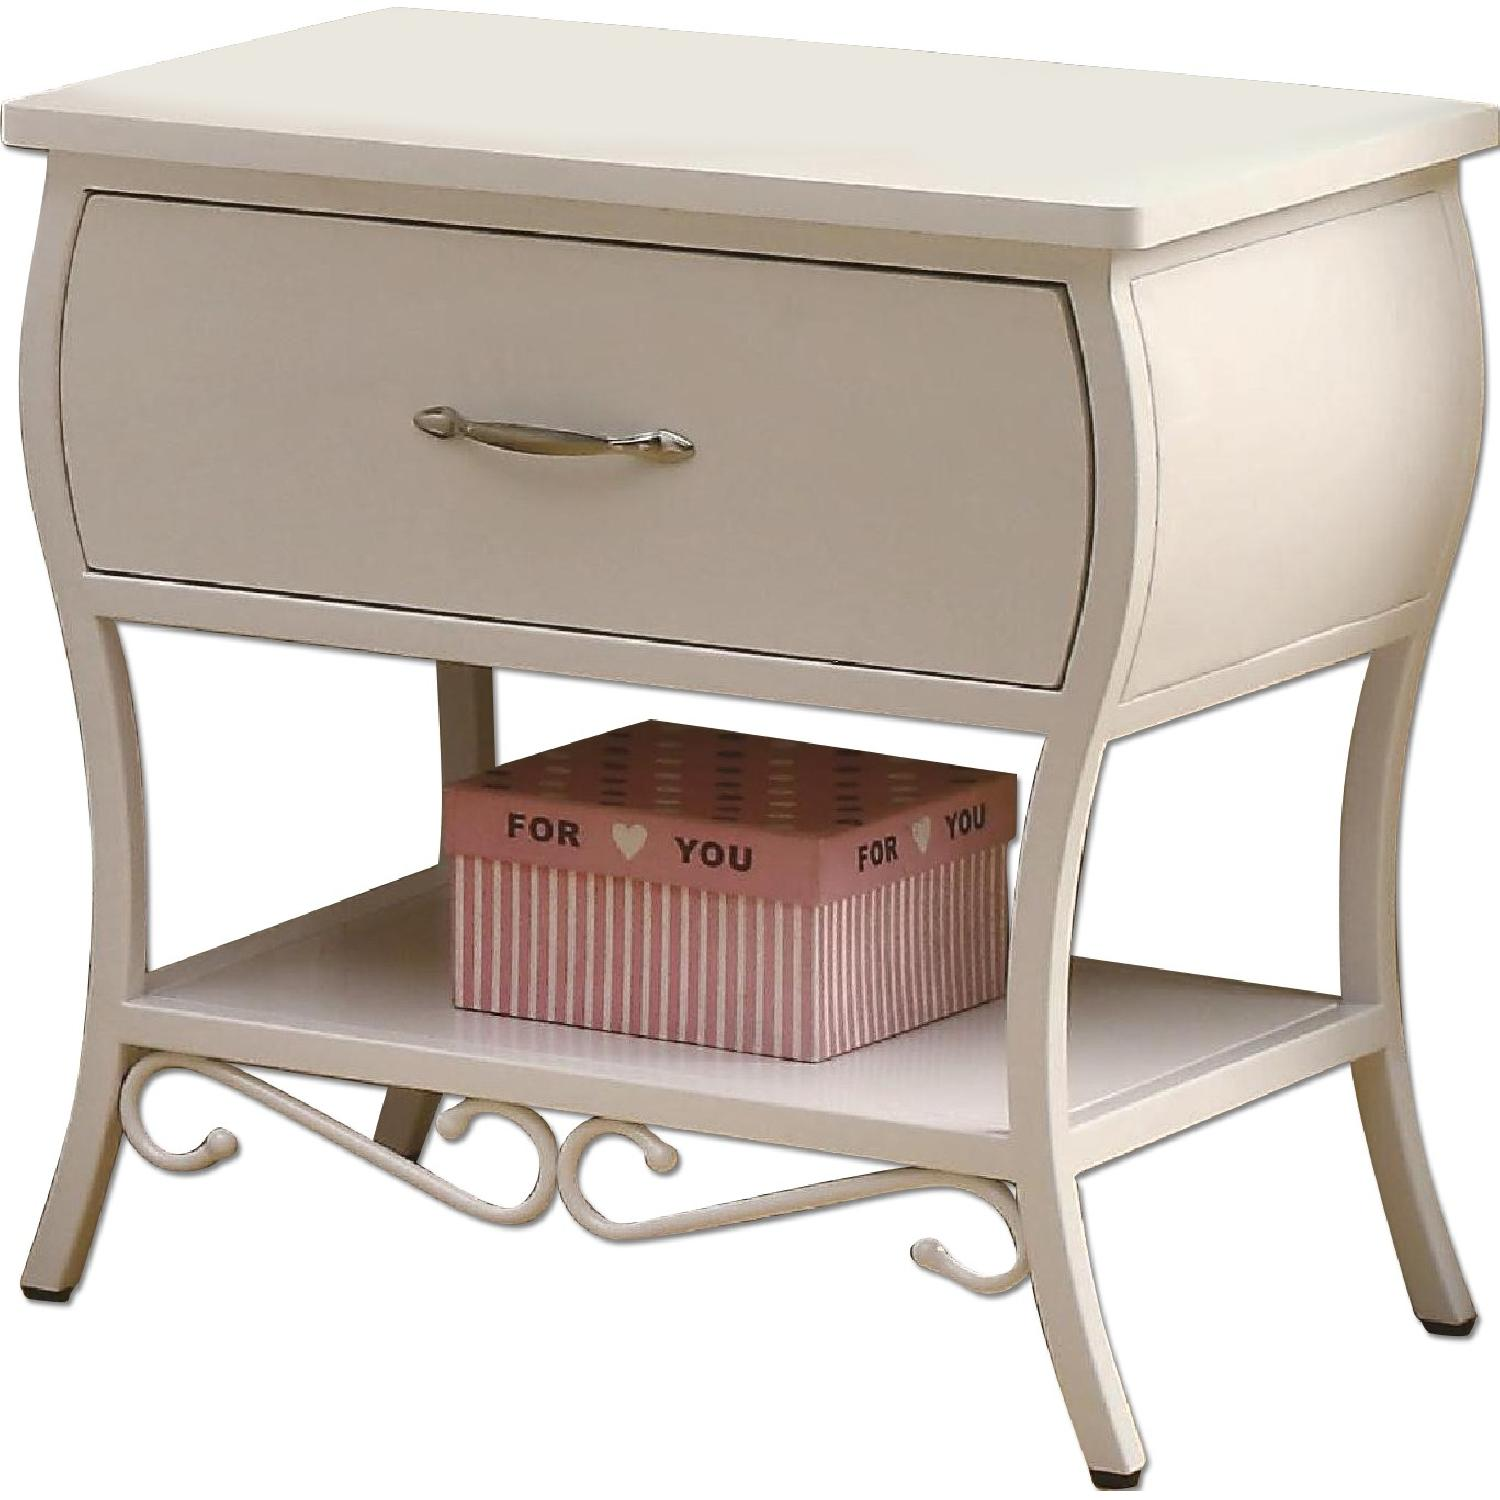 French Country Style Metal Night Table in White - image-0